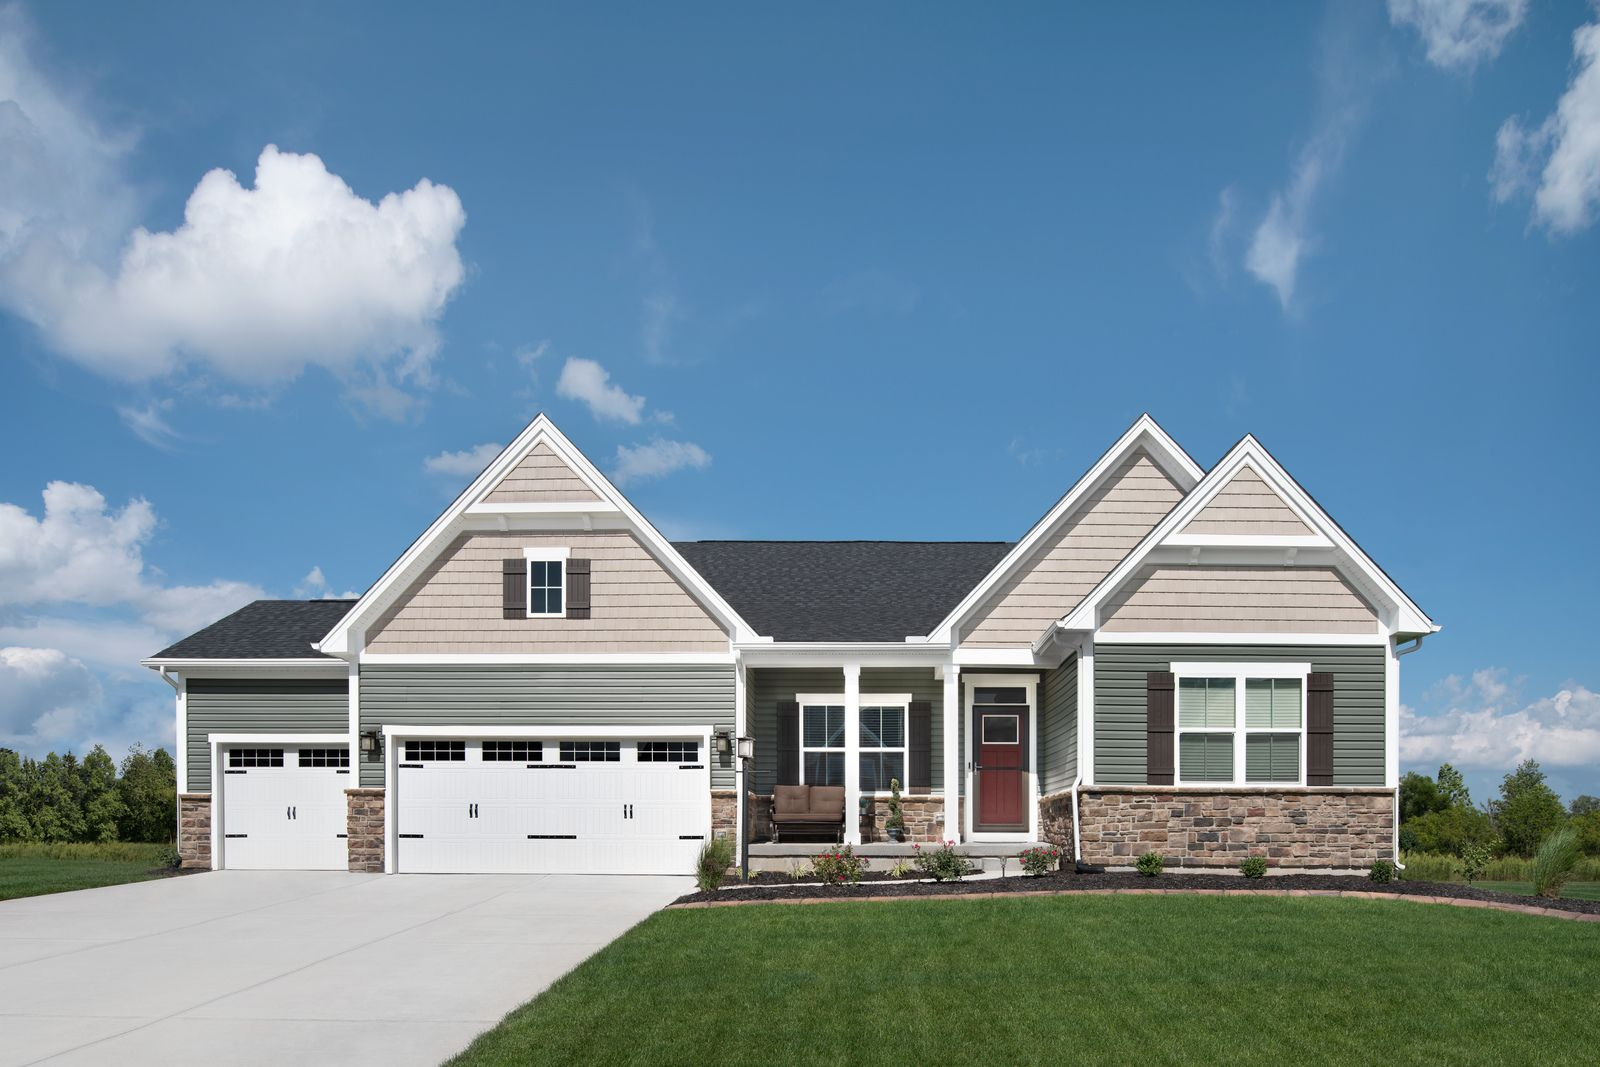 Welcome to Spring Breeze:A wooded community with spacious homesites, just minutes from the Delaware beaches.Click here to schedule an appointment today!